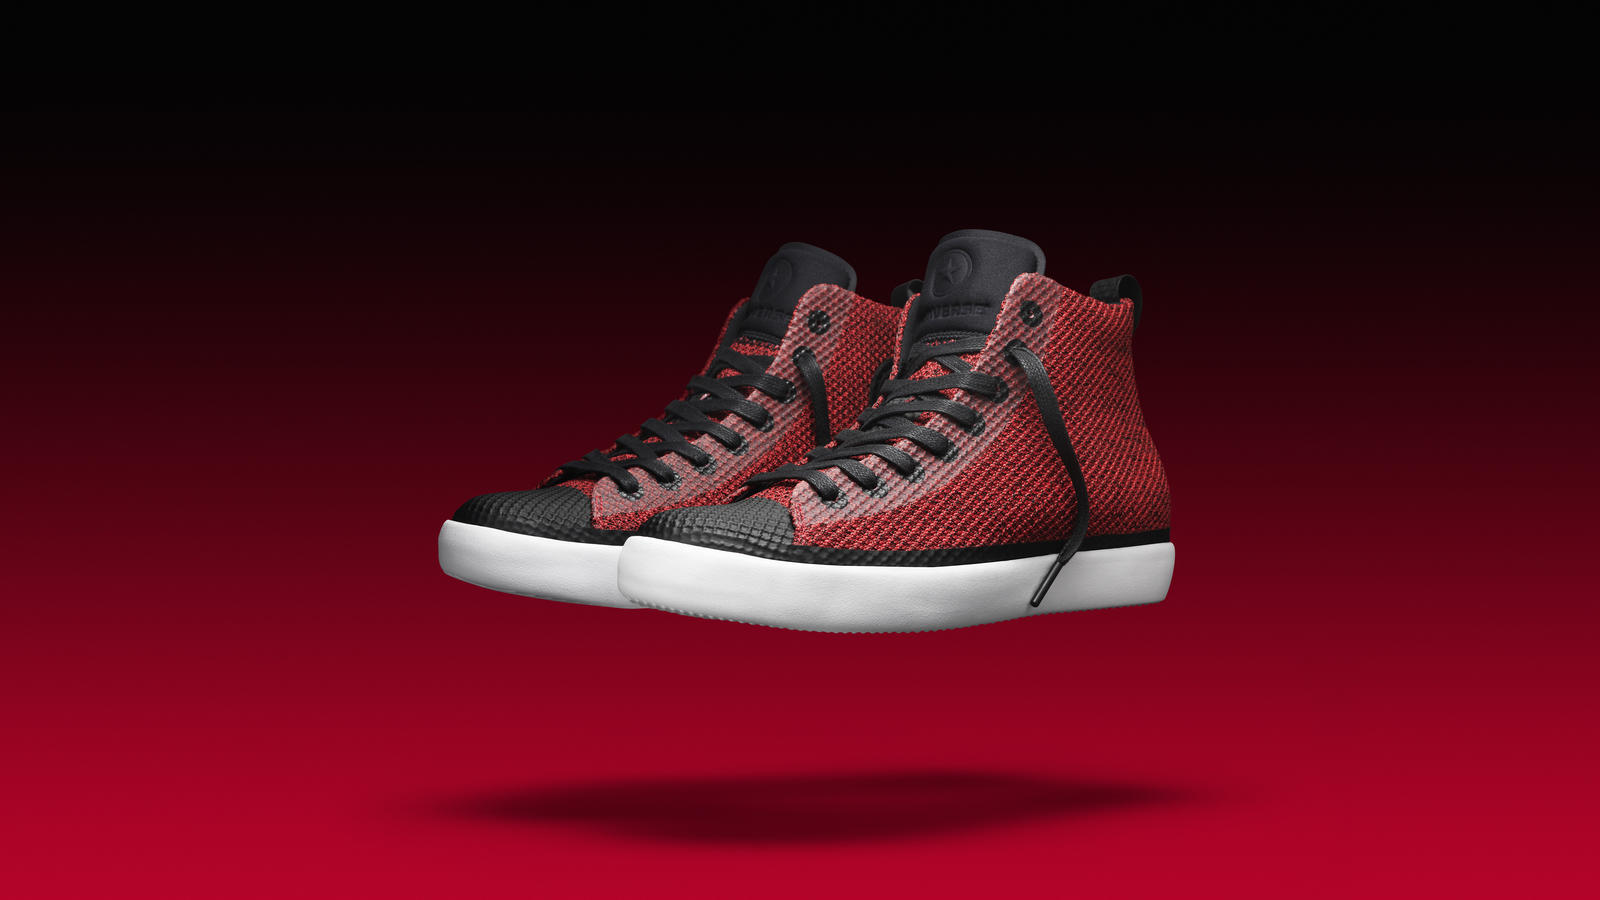 a9644356b498 CONVERSE UNVEILS THE ALL STAR MODERN SNEAKER INSPIRED BY THE 1920 ...